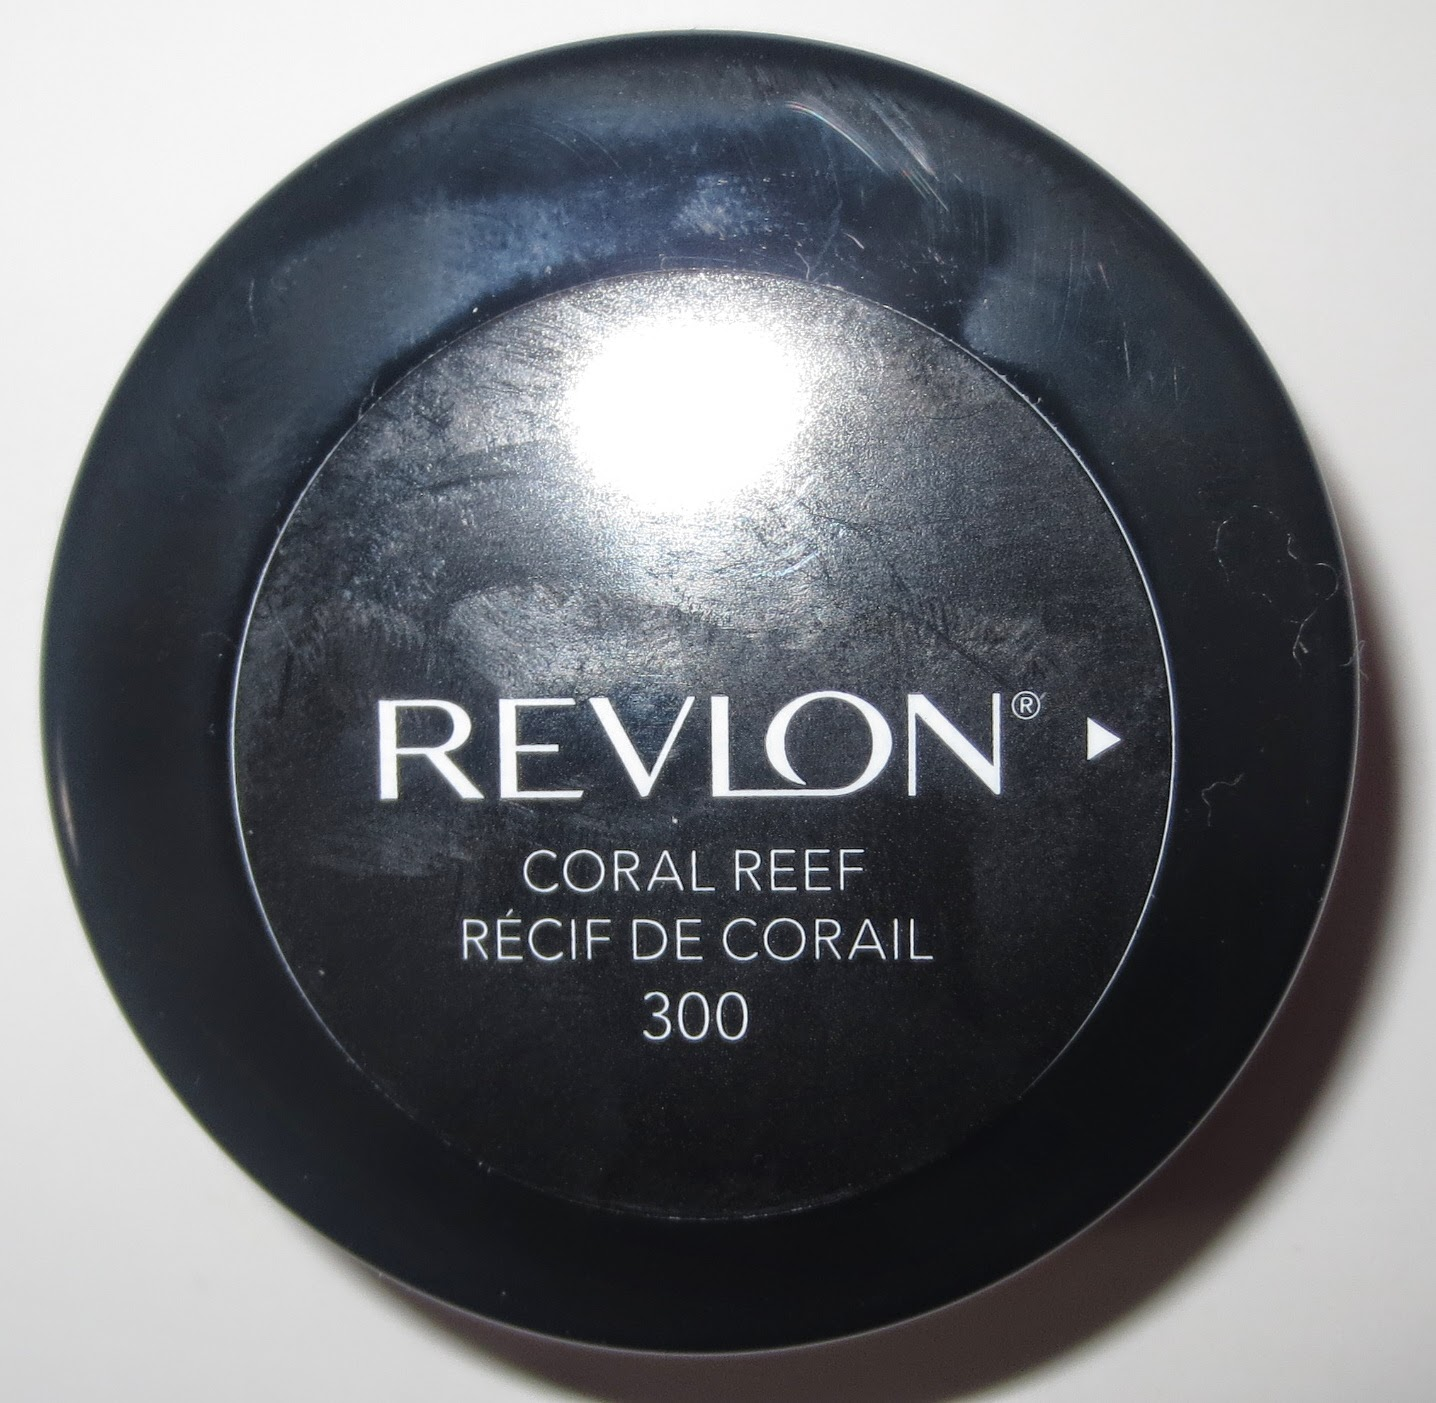 Revlon's Cream Blush in Coral Reef